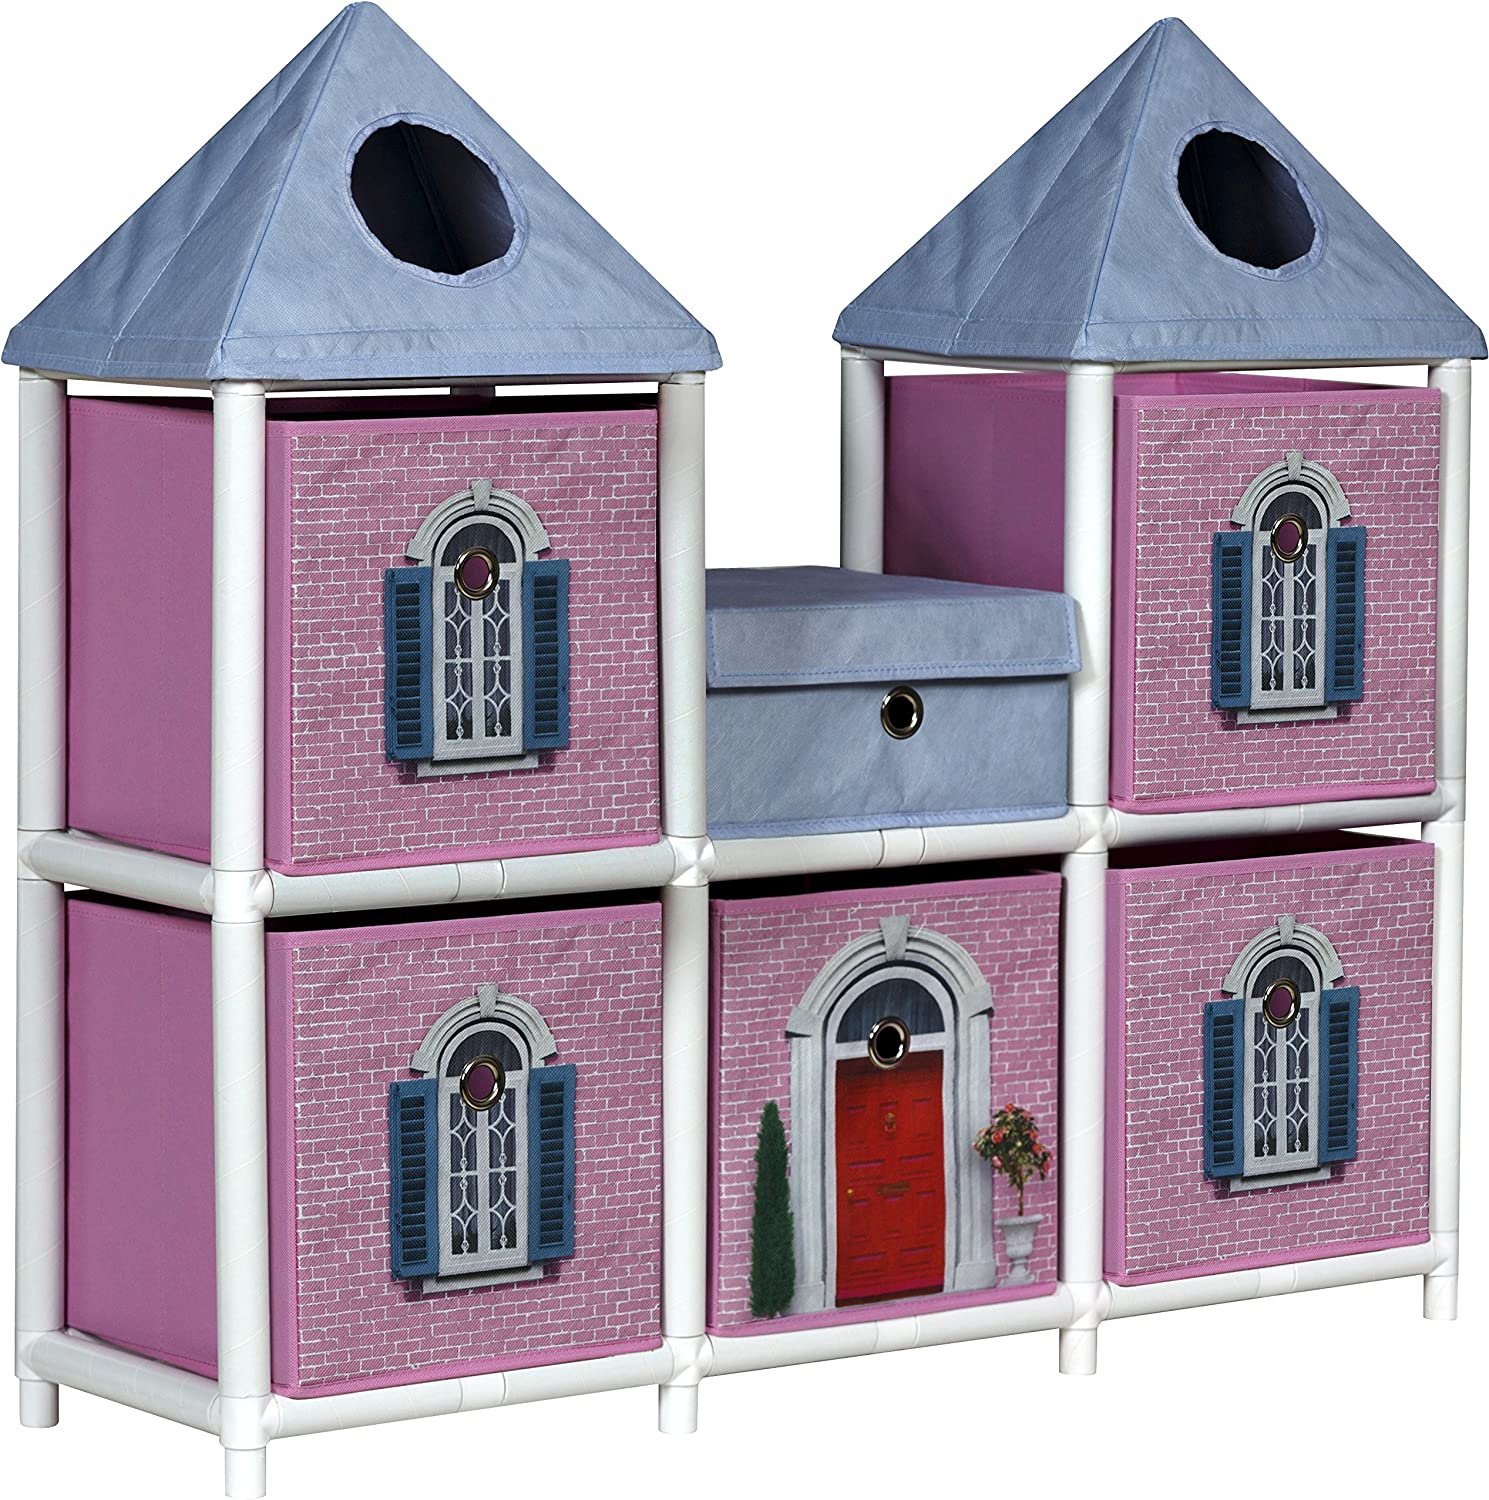 OneSpace 100% Recycled Paper Fantasy House Kids Storage Unit, Pink and bluee